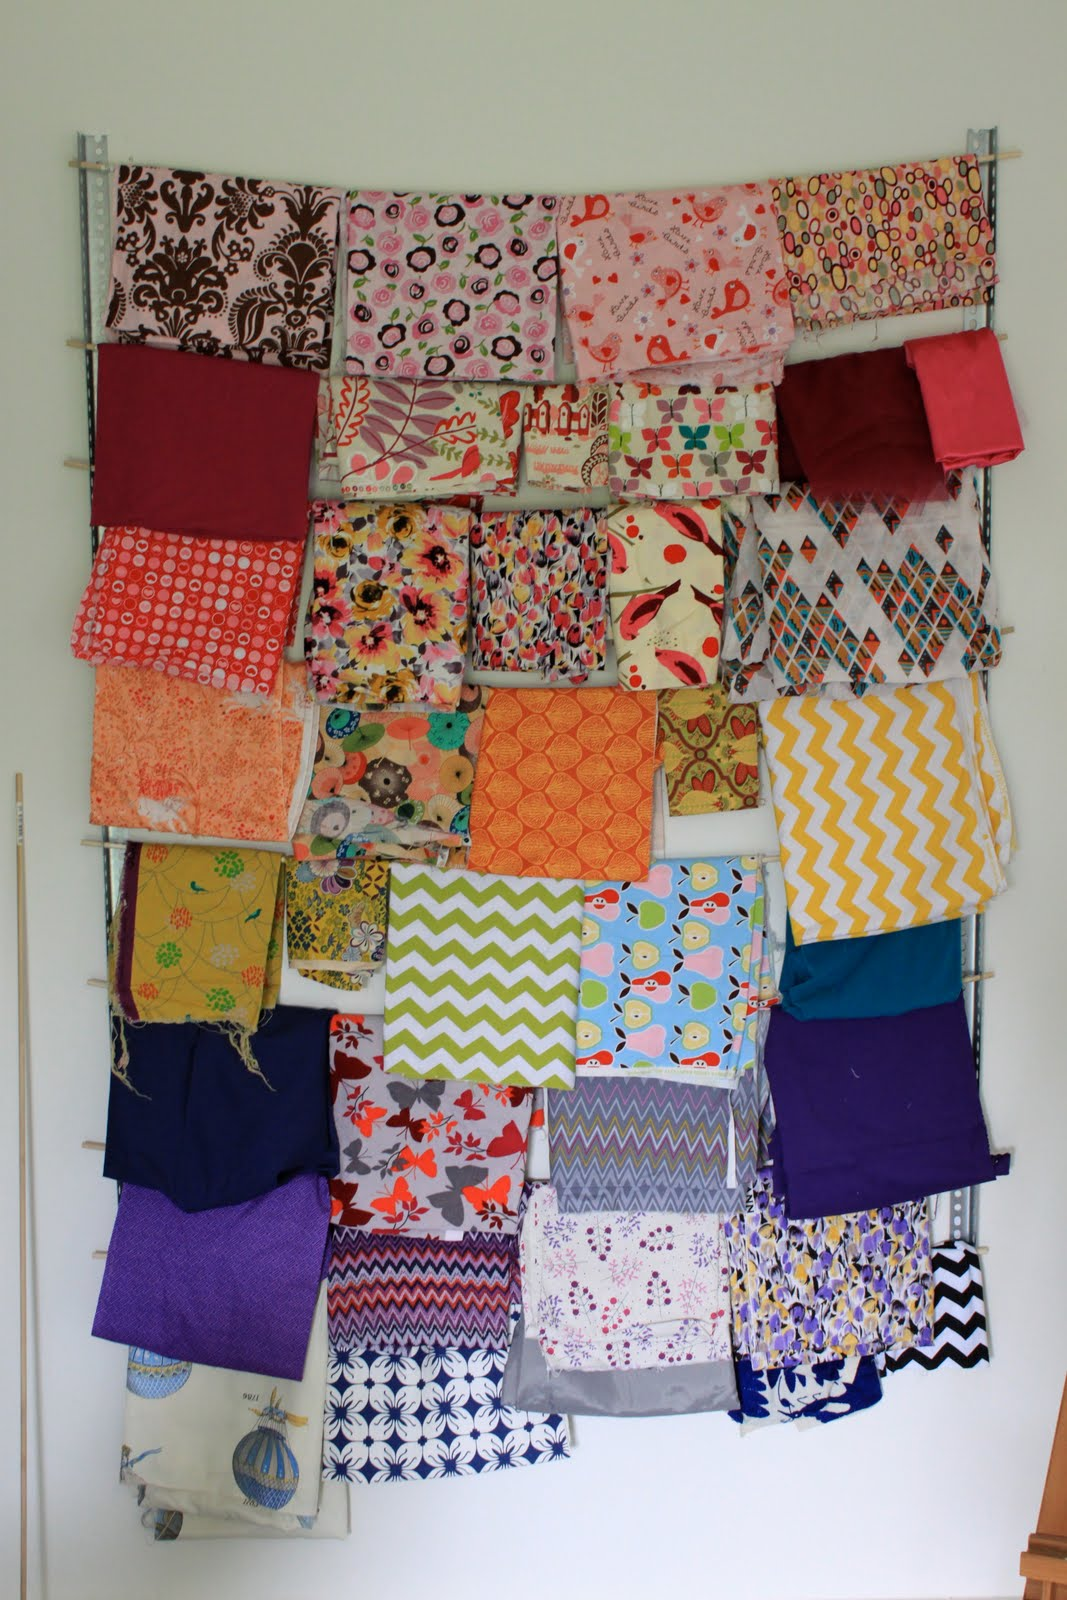 & DIY Fabric Storage | Pretty Prudent